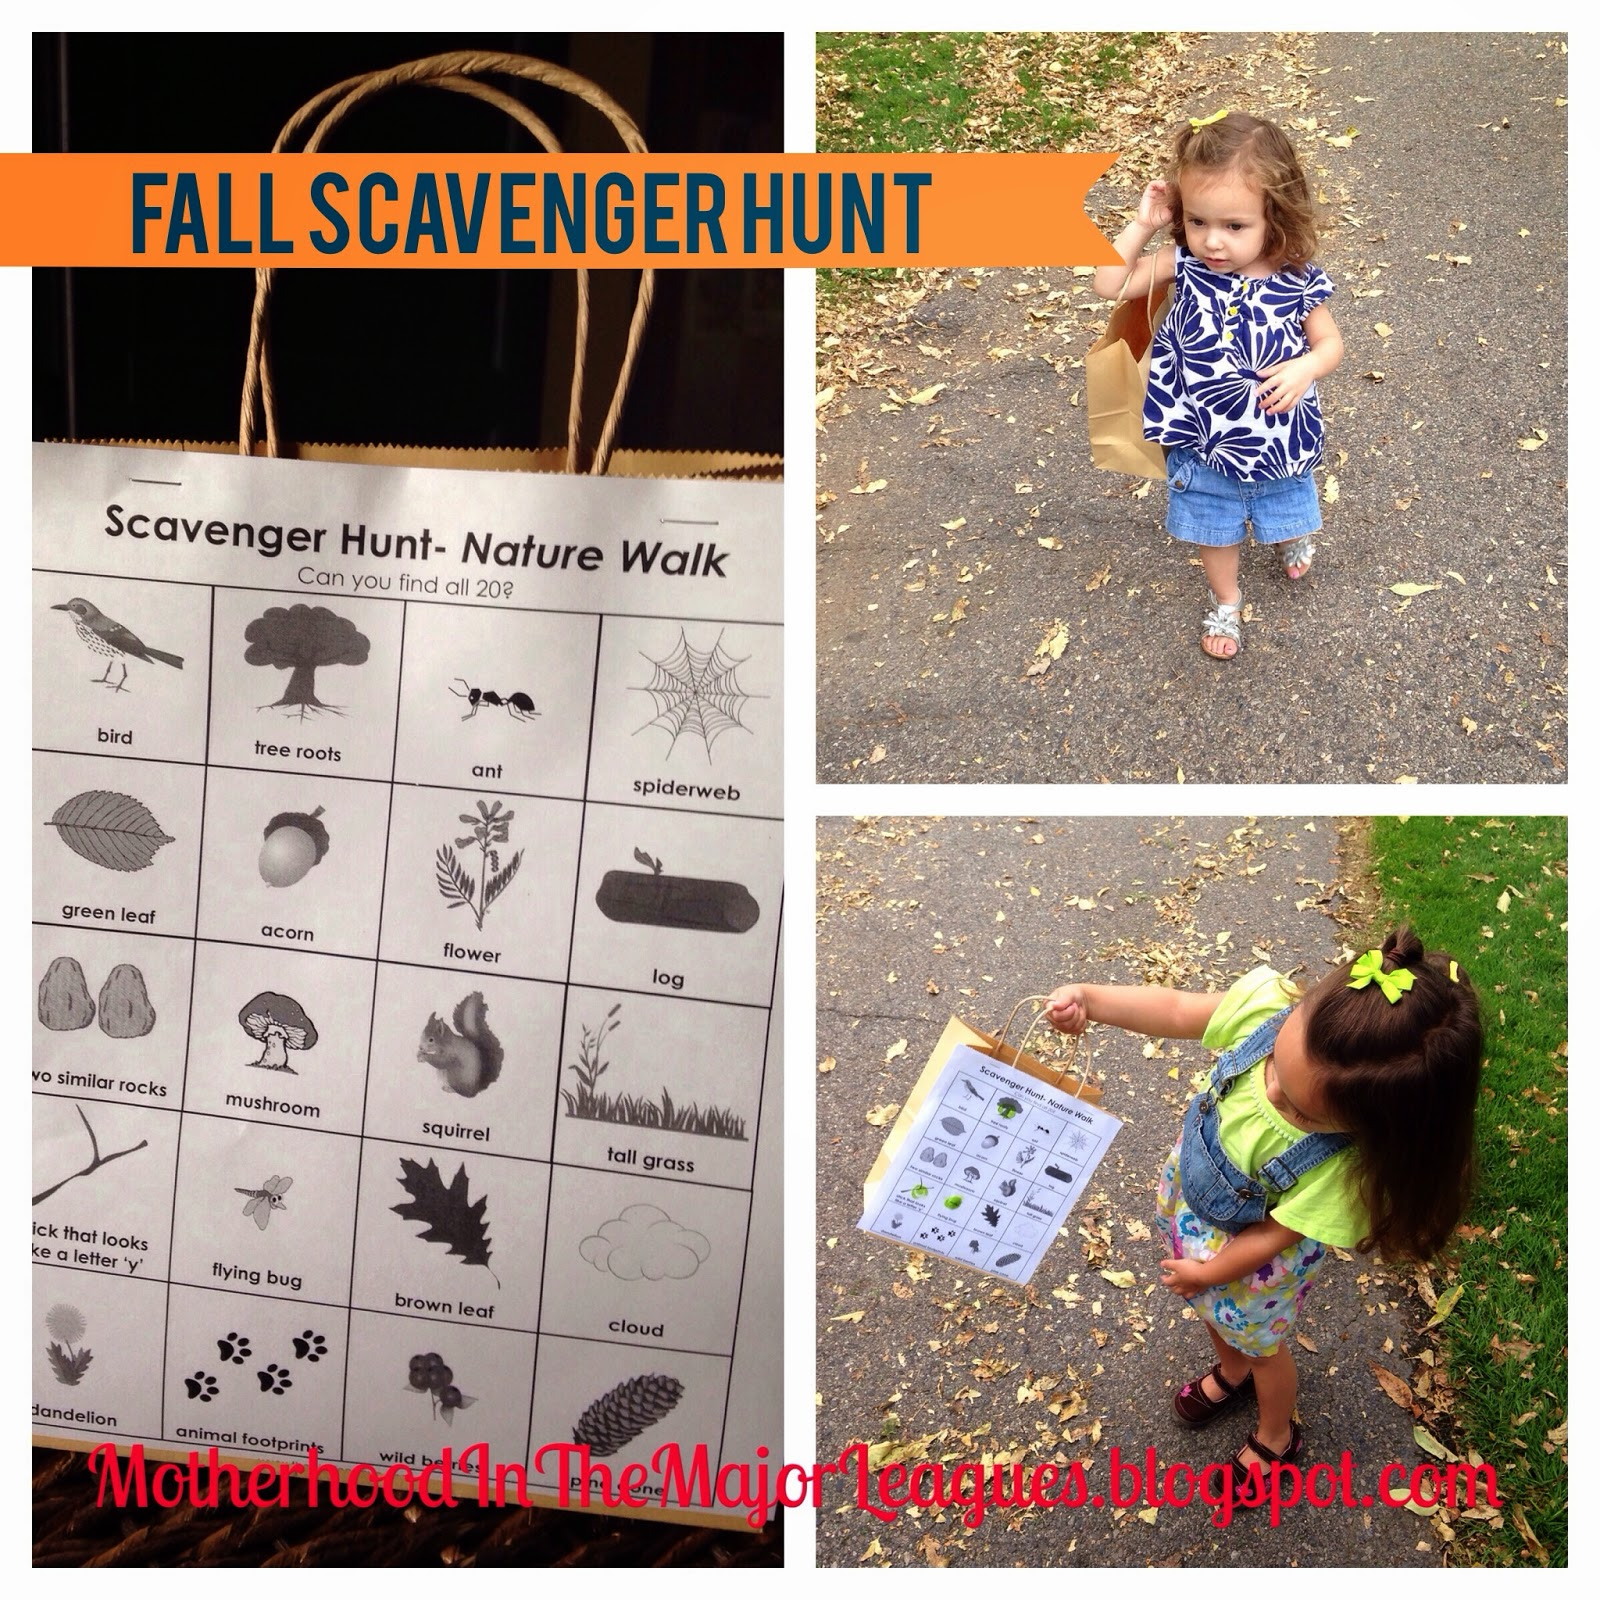 Motherhood In The Major Leagues Fall Scavenger Hunt Nature Walk And Activities